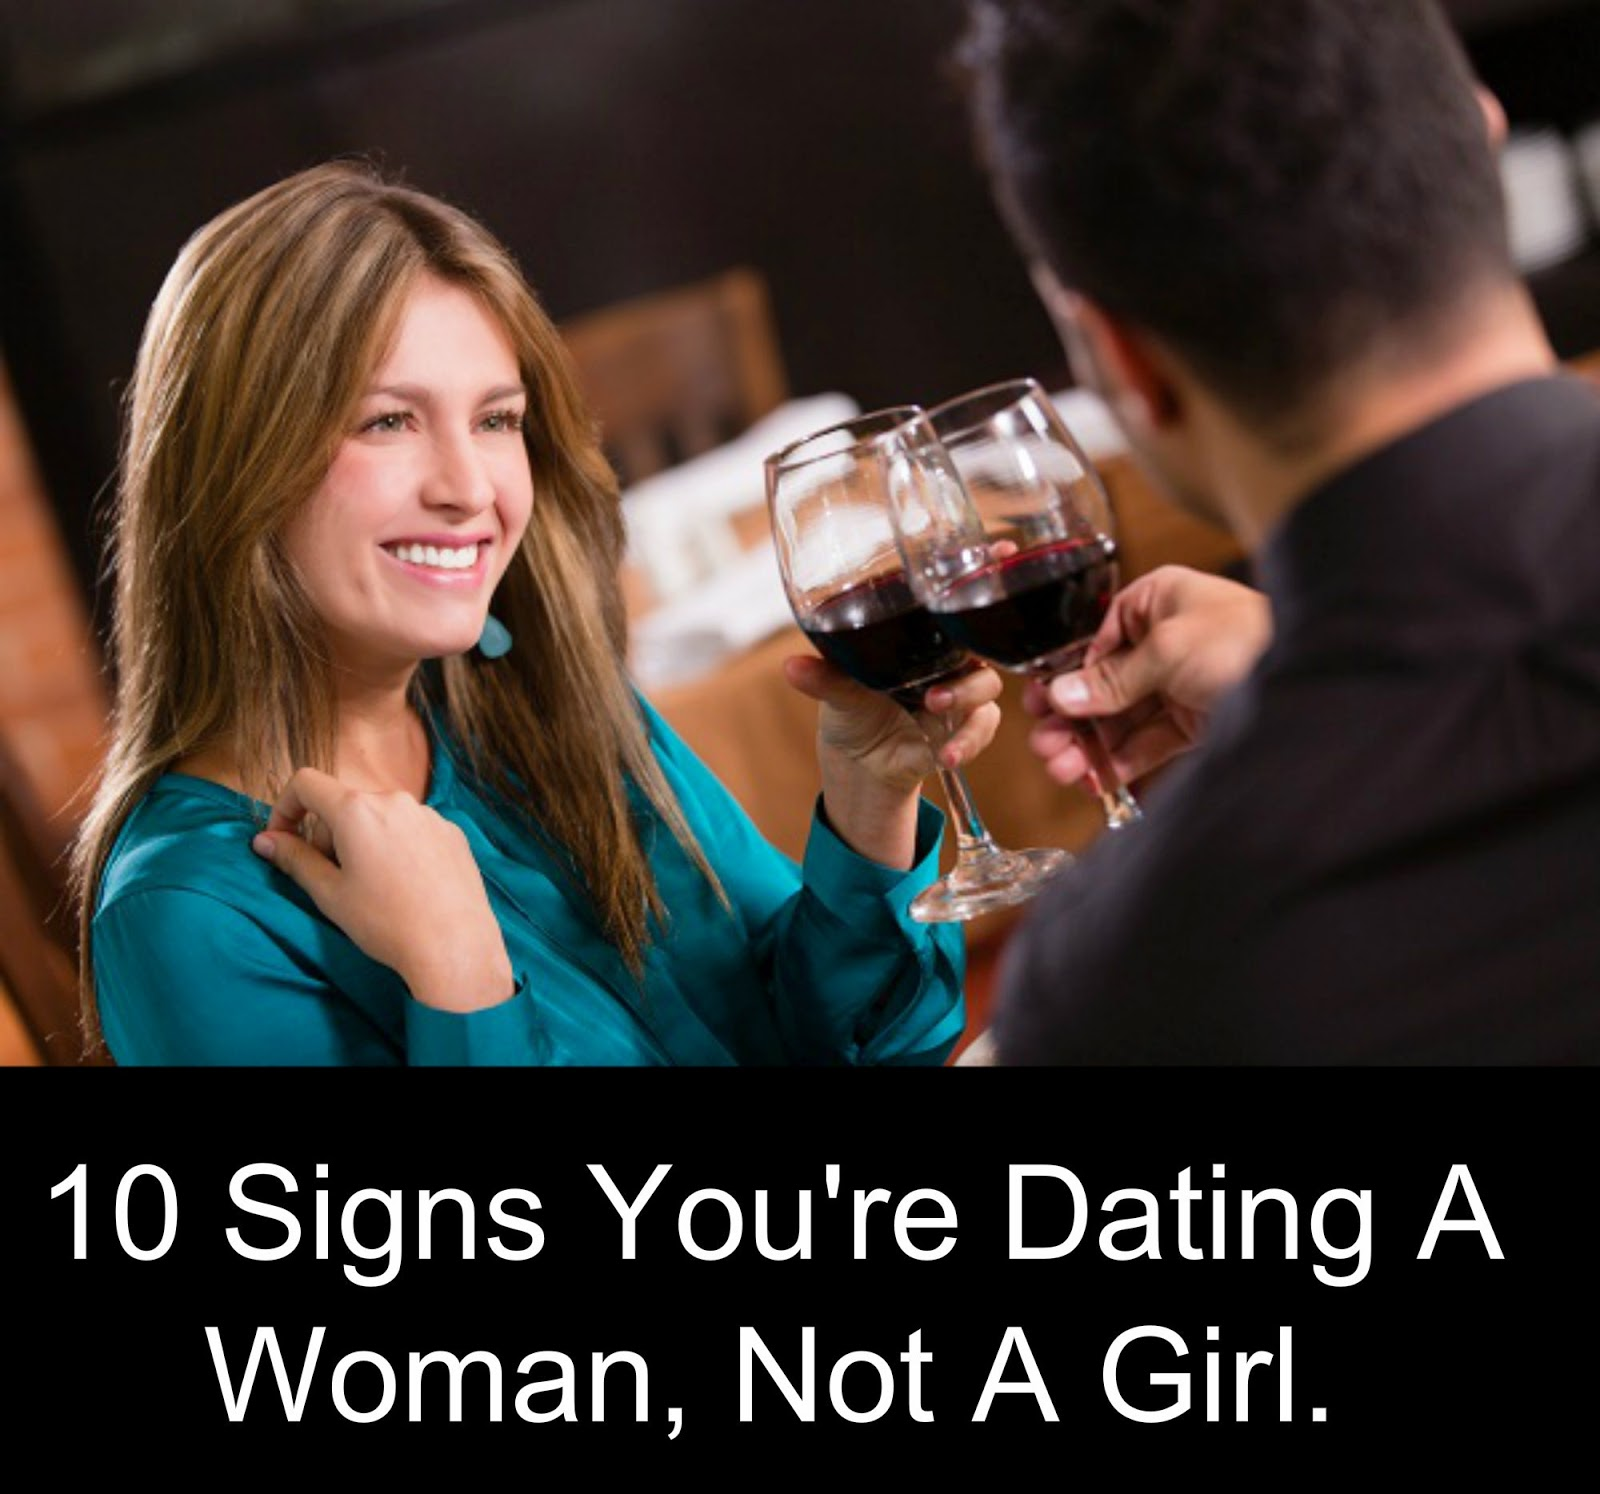 10 signs youre dating a woman not a girl